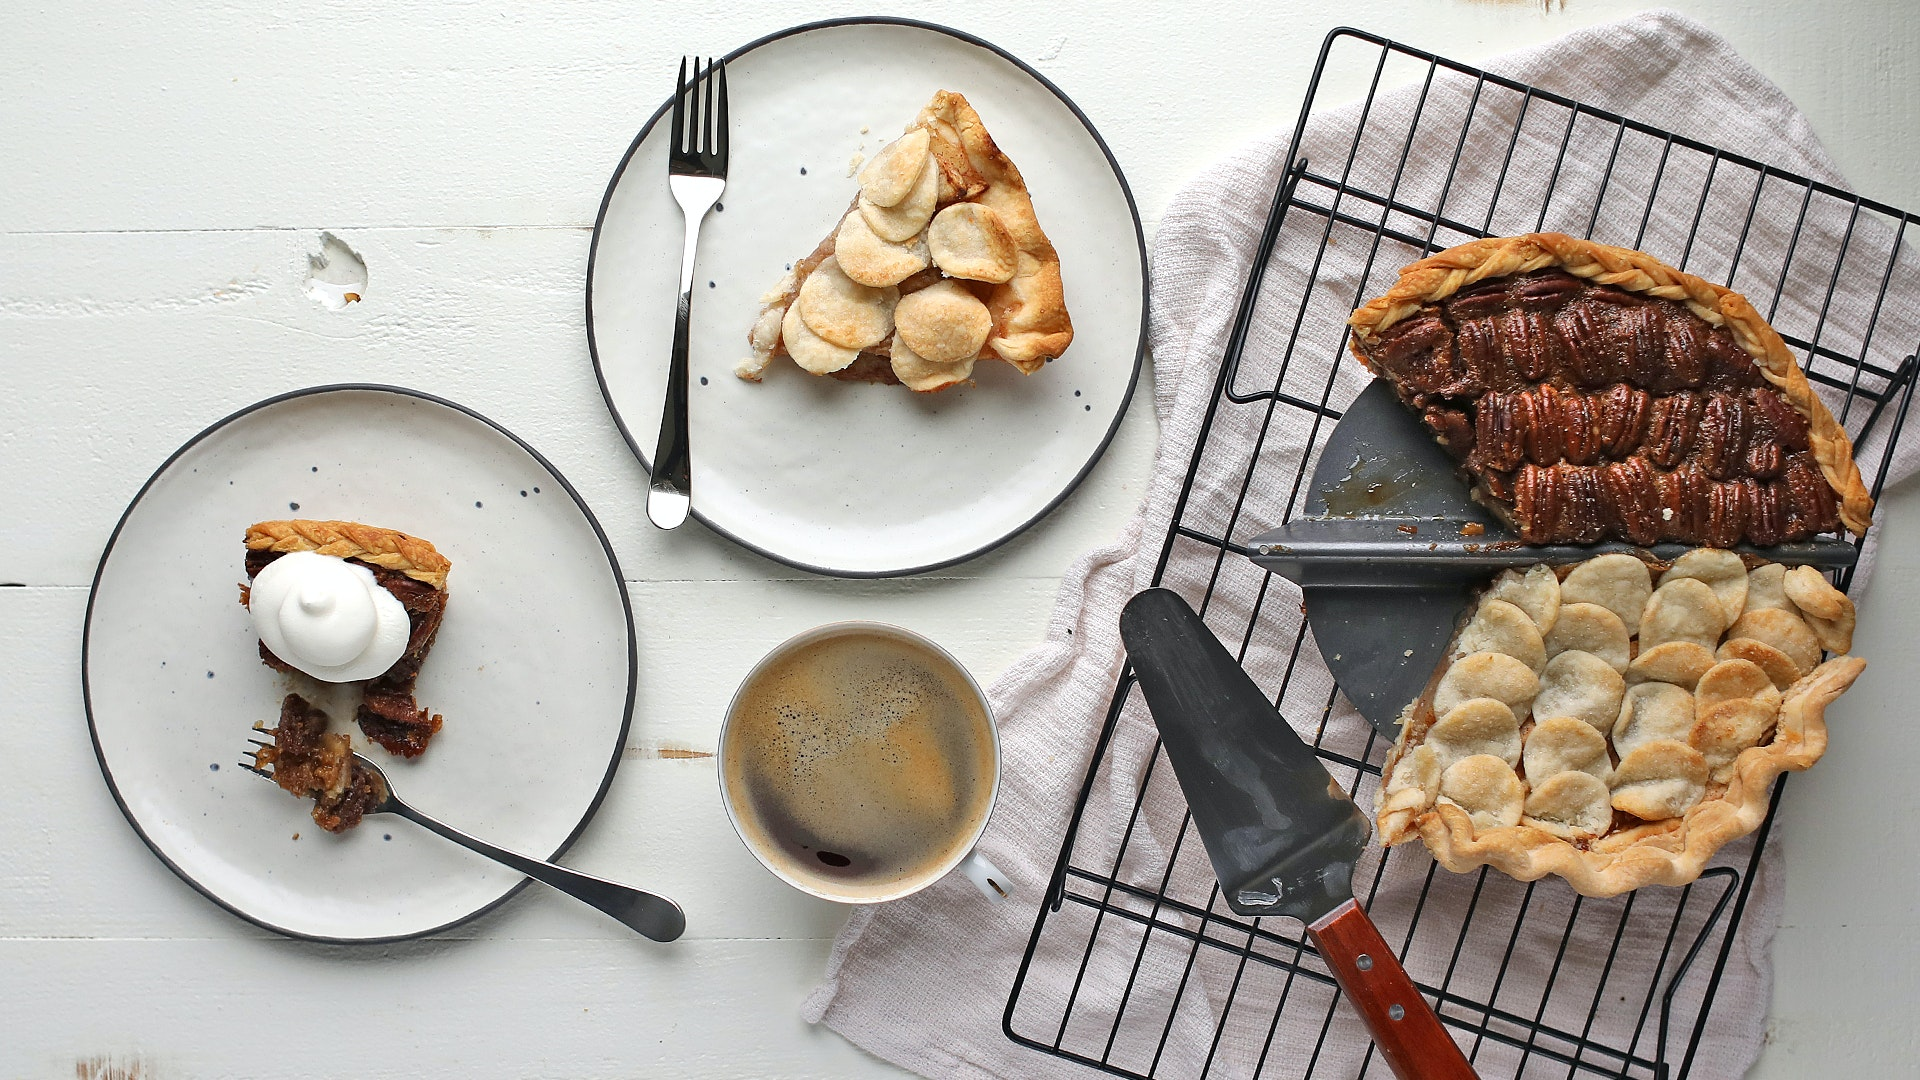 This Pan Lets You Make Two Pies At Once (For When You Have a Divided Household)